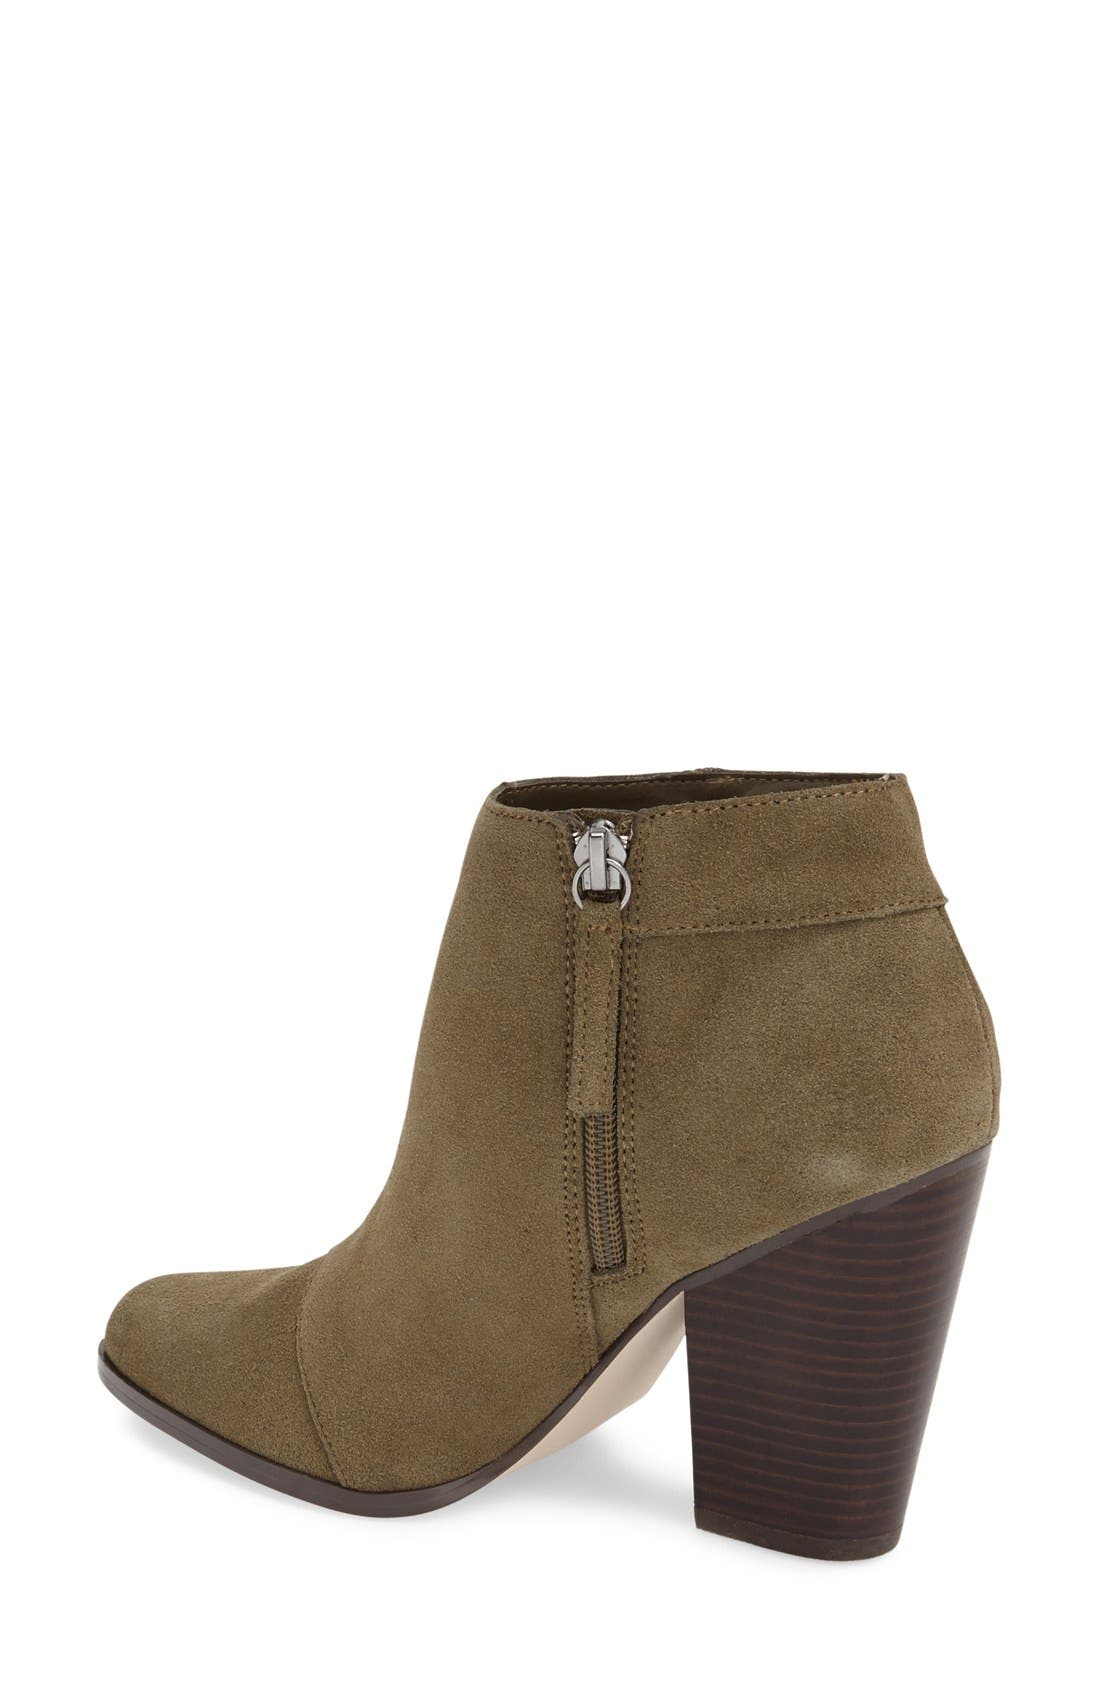 Alternate Image 2  - Sole Society 'Talisha' Tassel Bootie (Women)